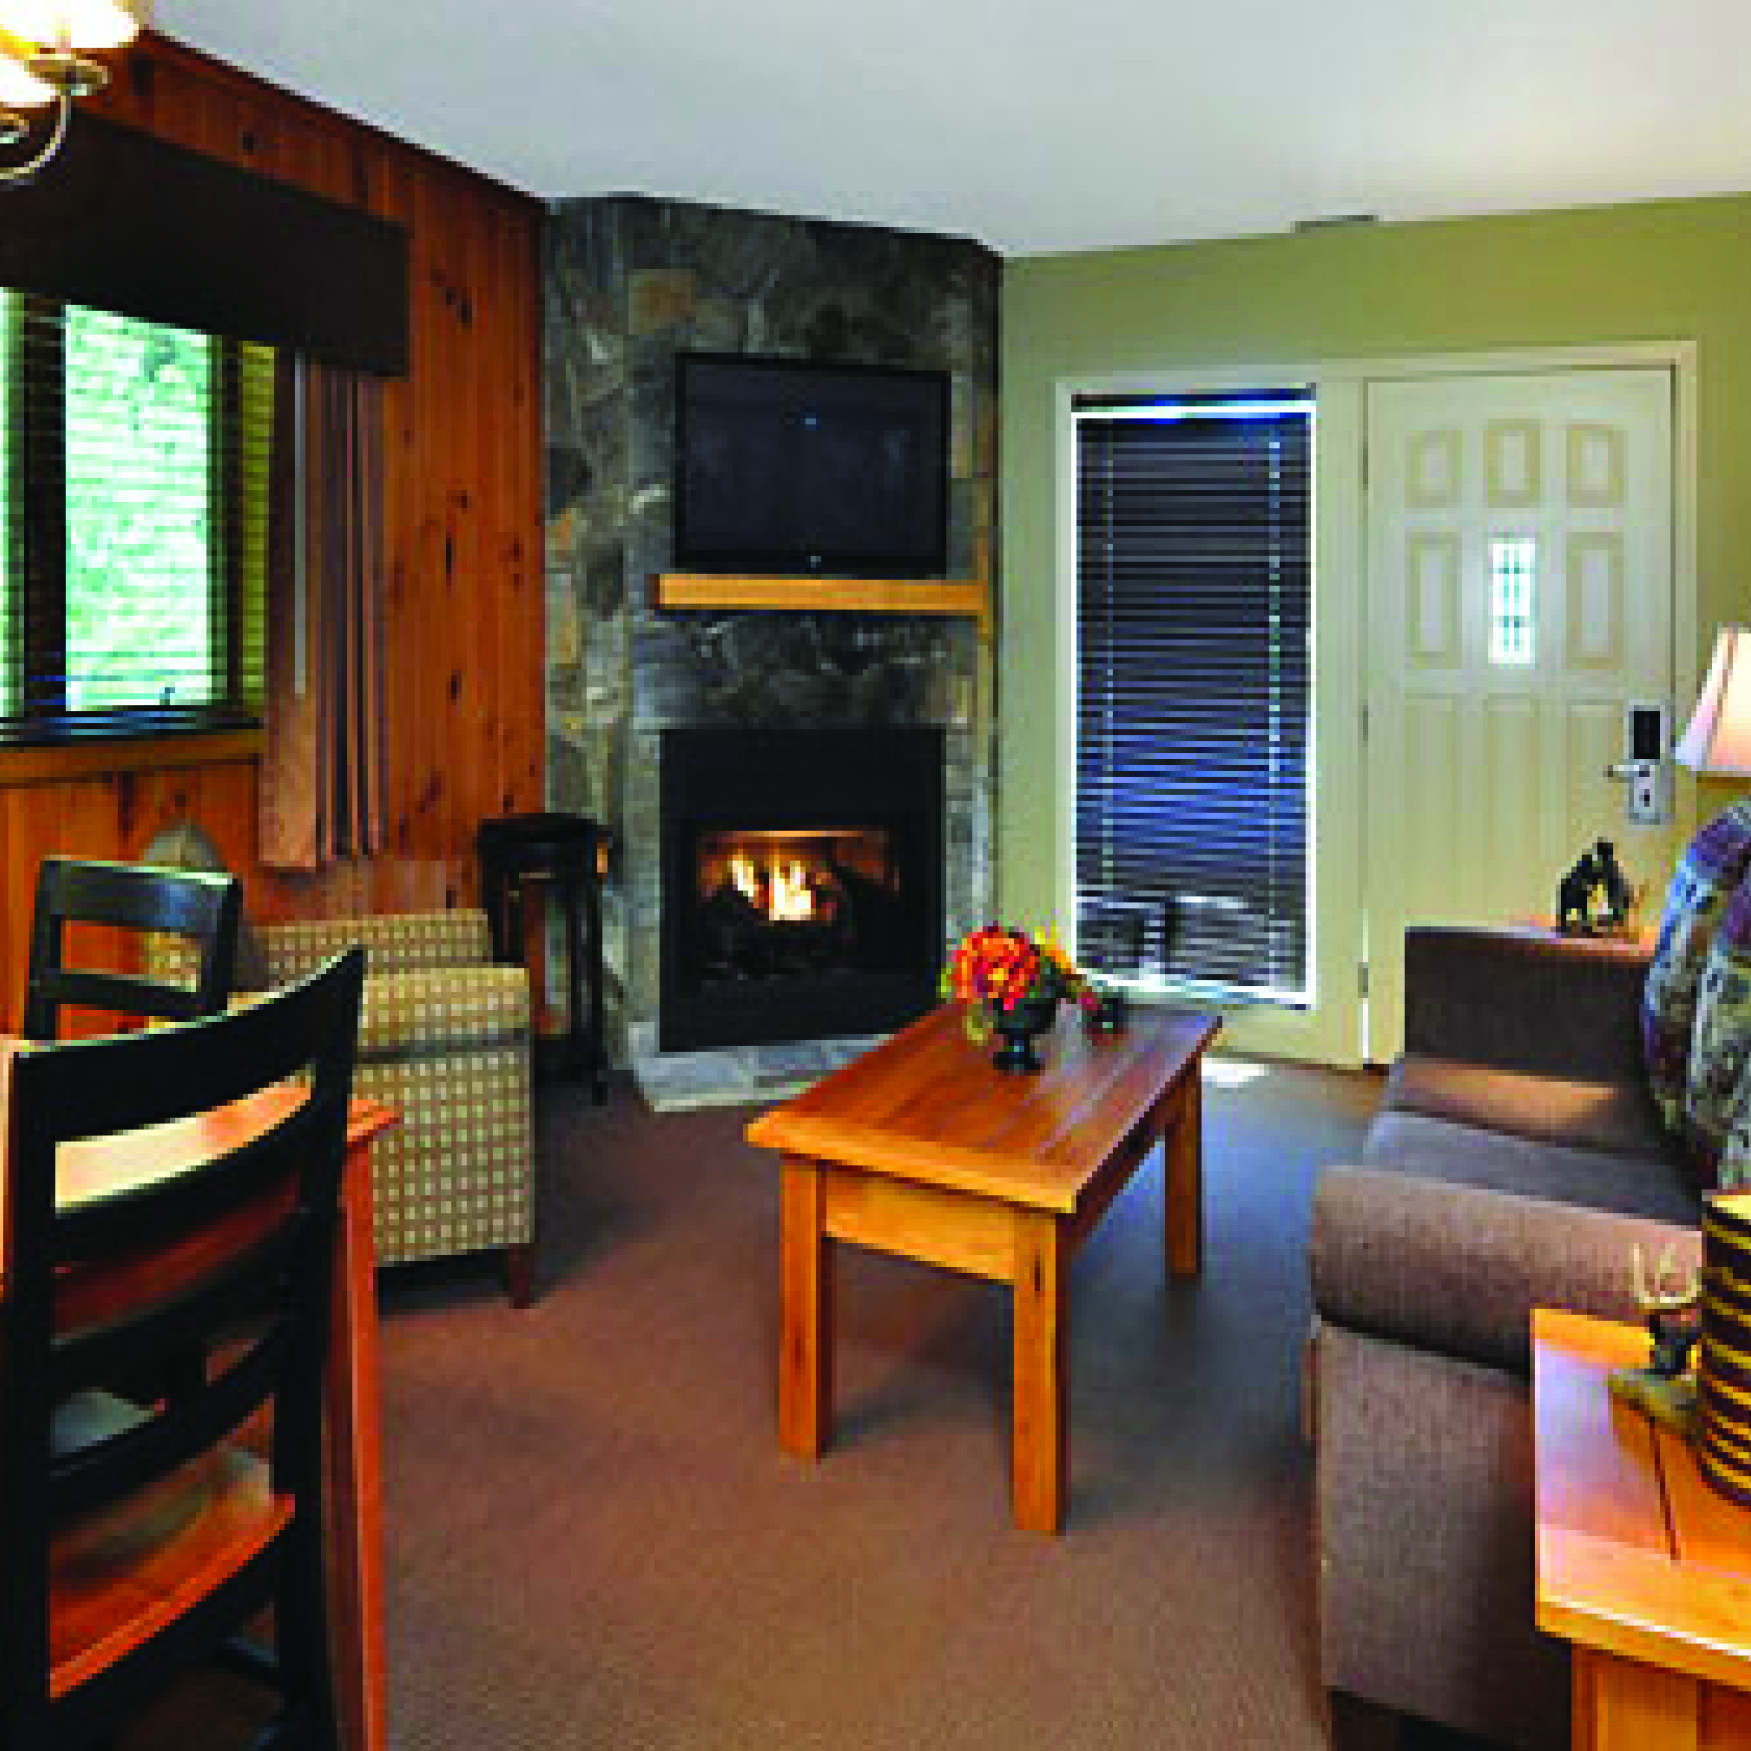 Country Kitchen Jackson Tn: Mountain Cabin Rentals, Condos And Chalets In The NC High